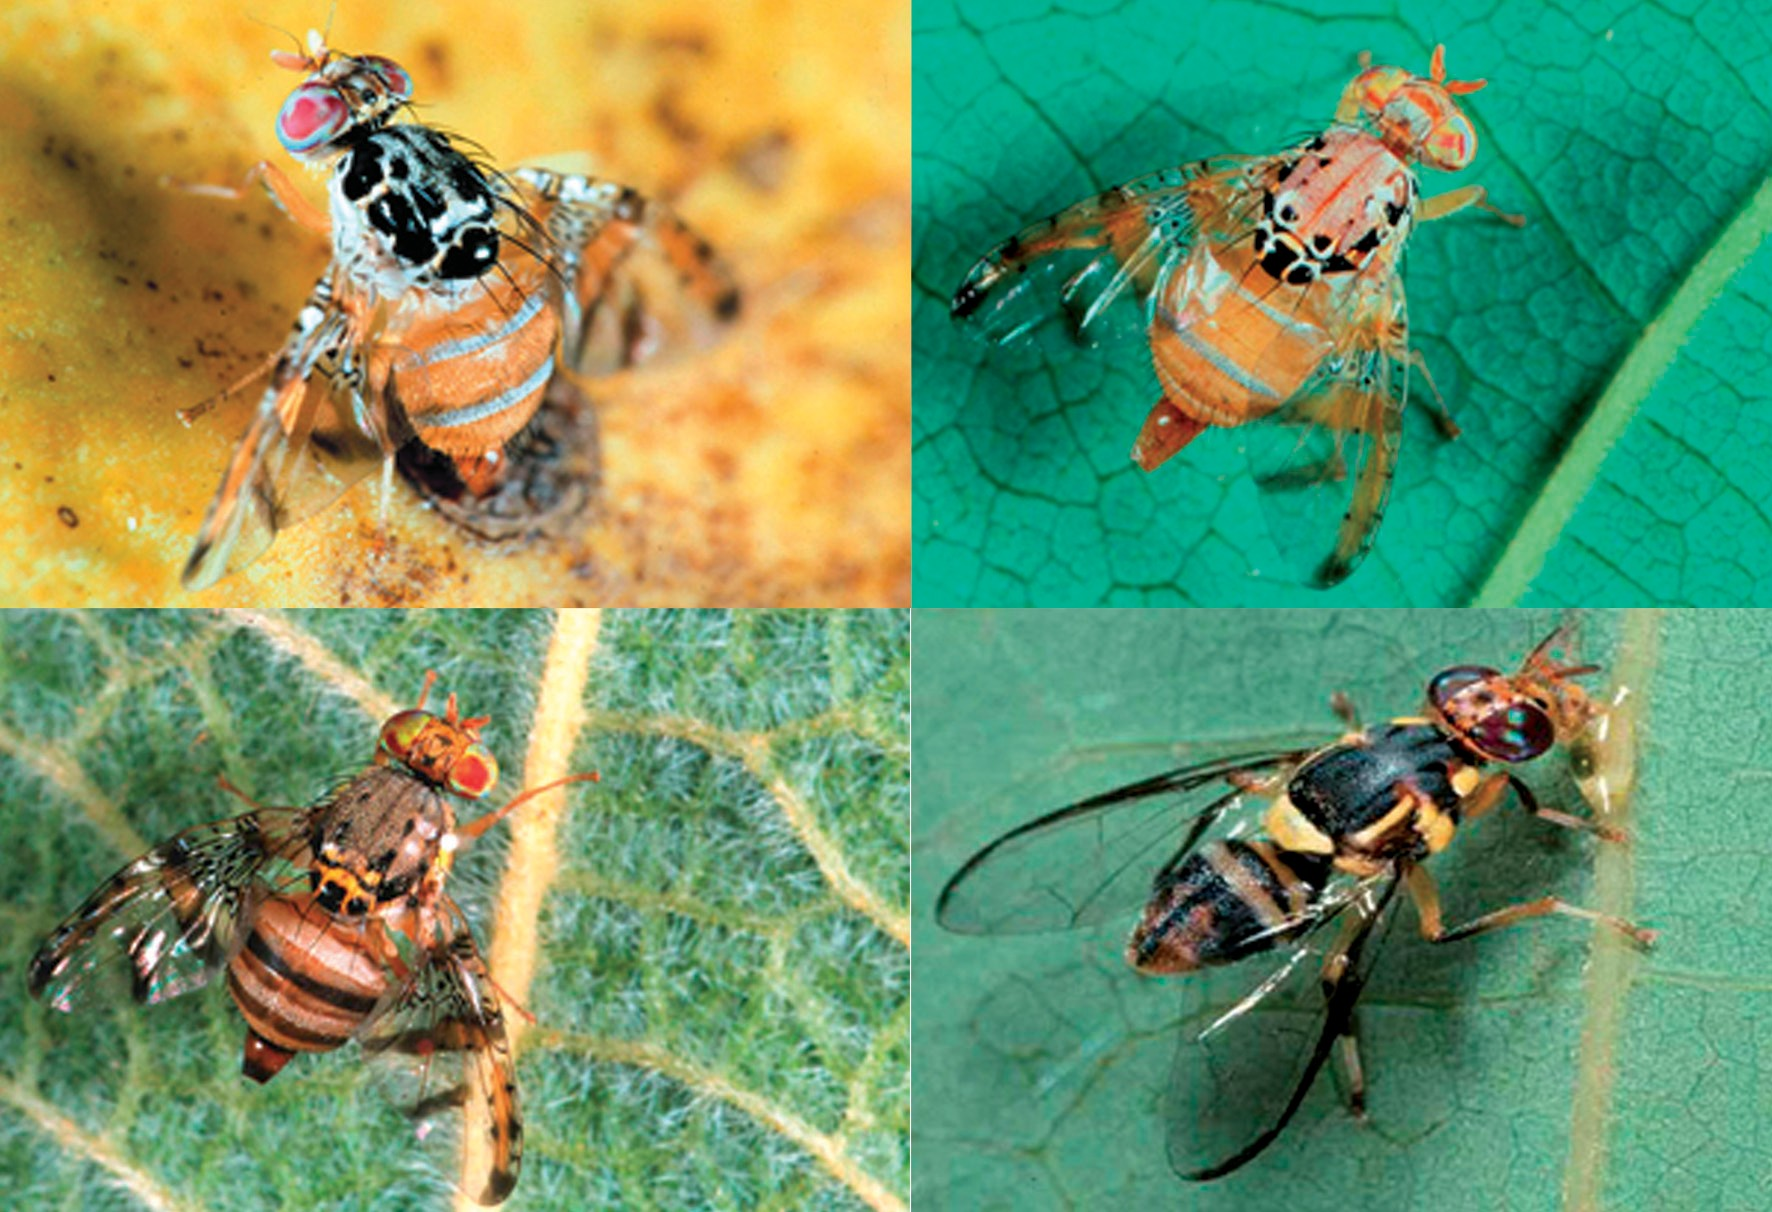 Image 1: Major fruit fly pests in Tanzania (clockwise from top left) B. dorsalis, C. rosa, C. cosyra and C. captata